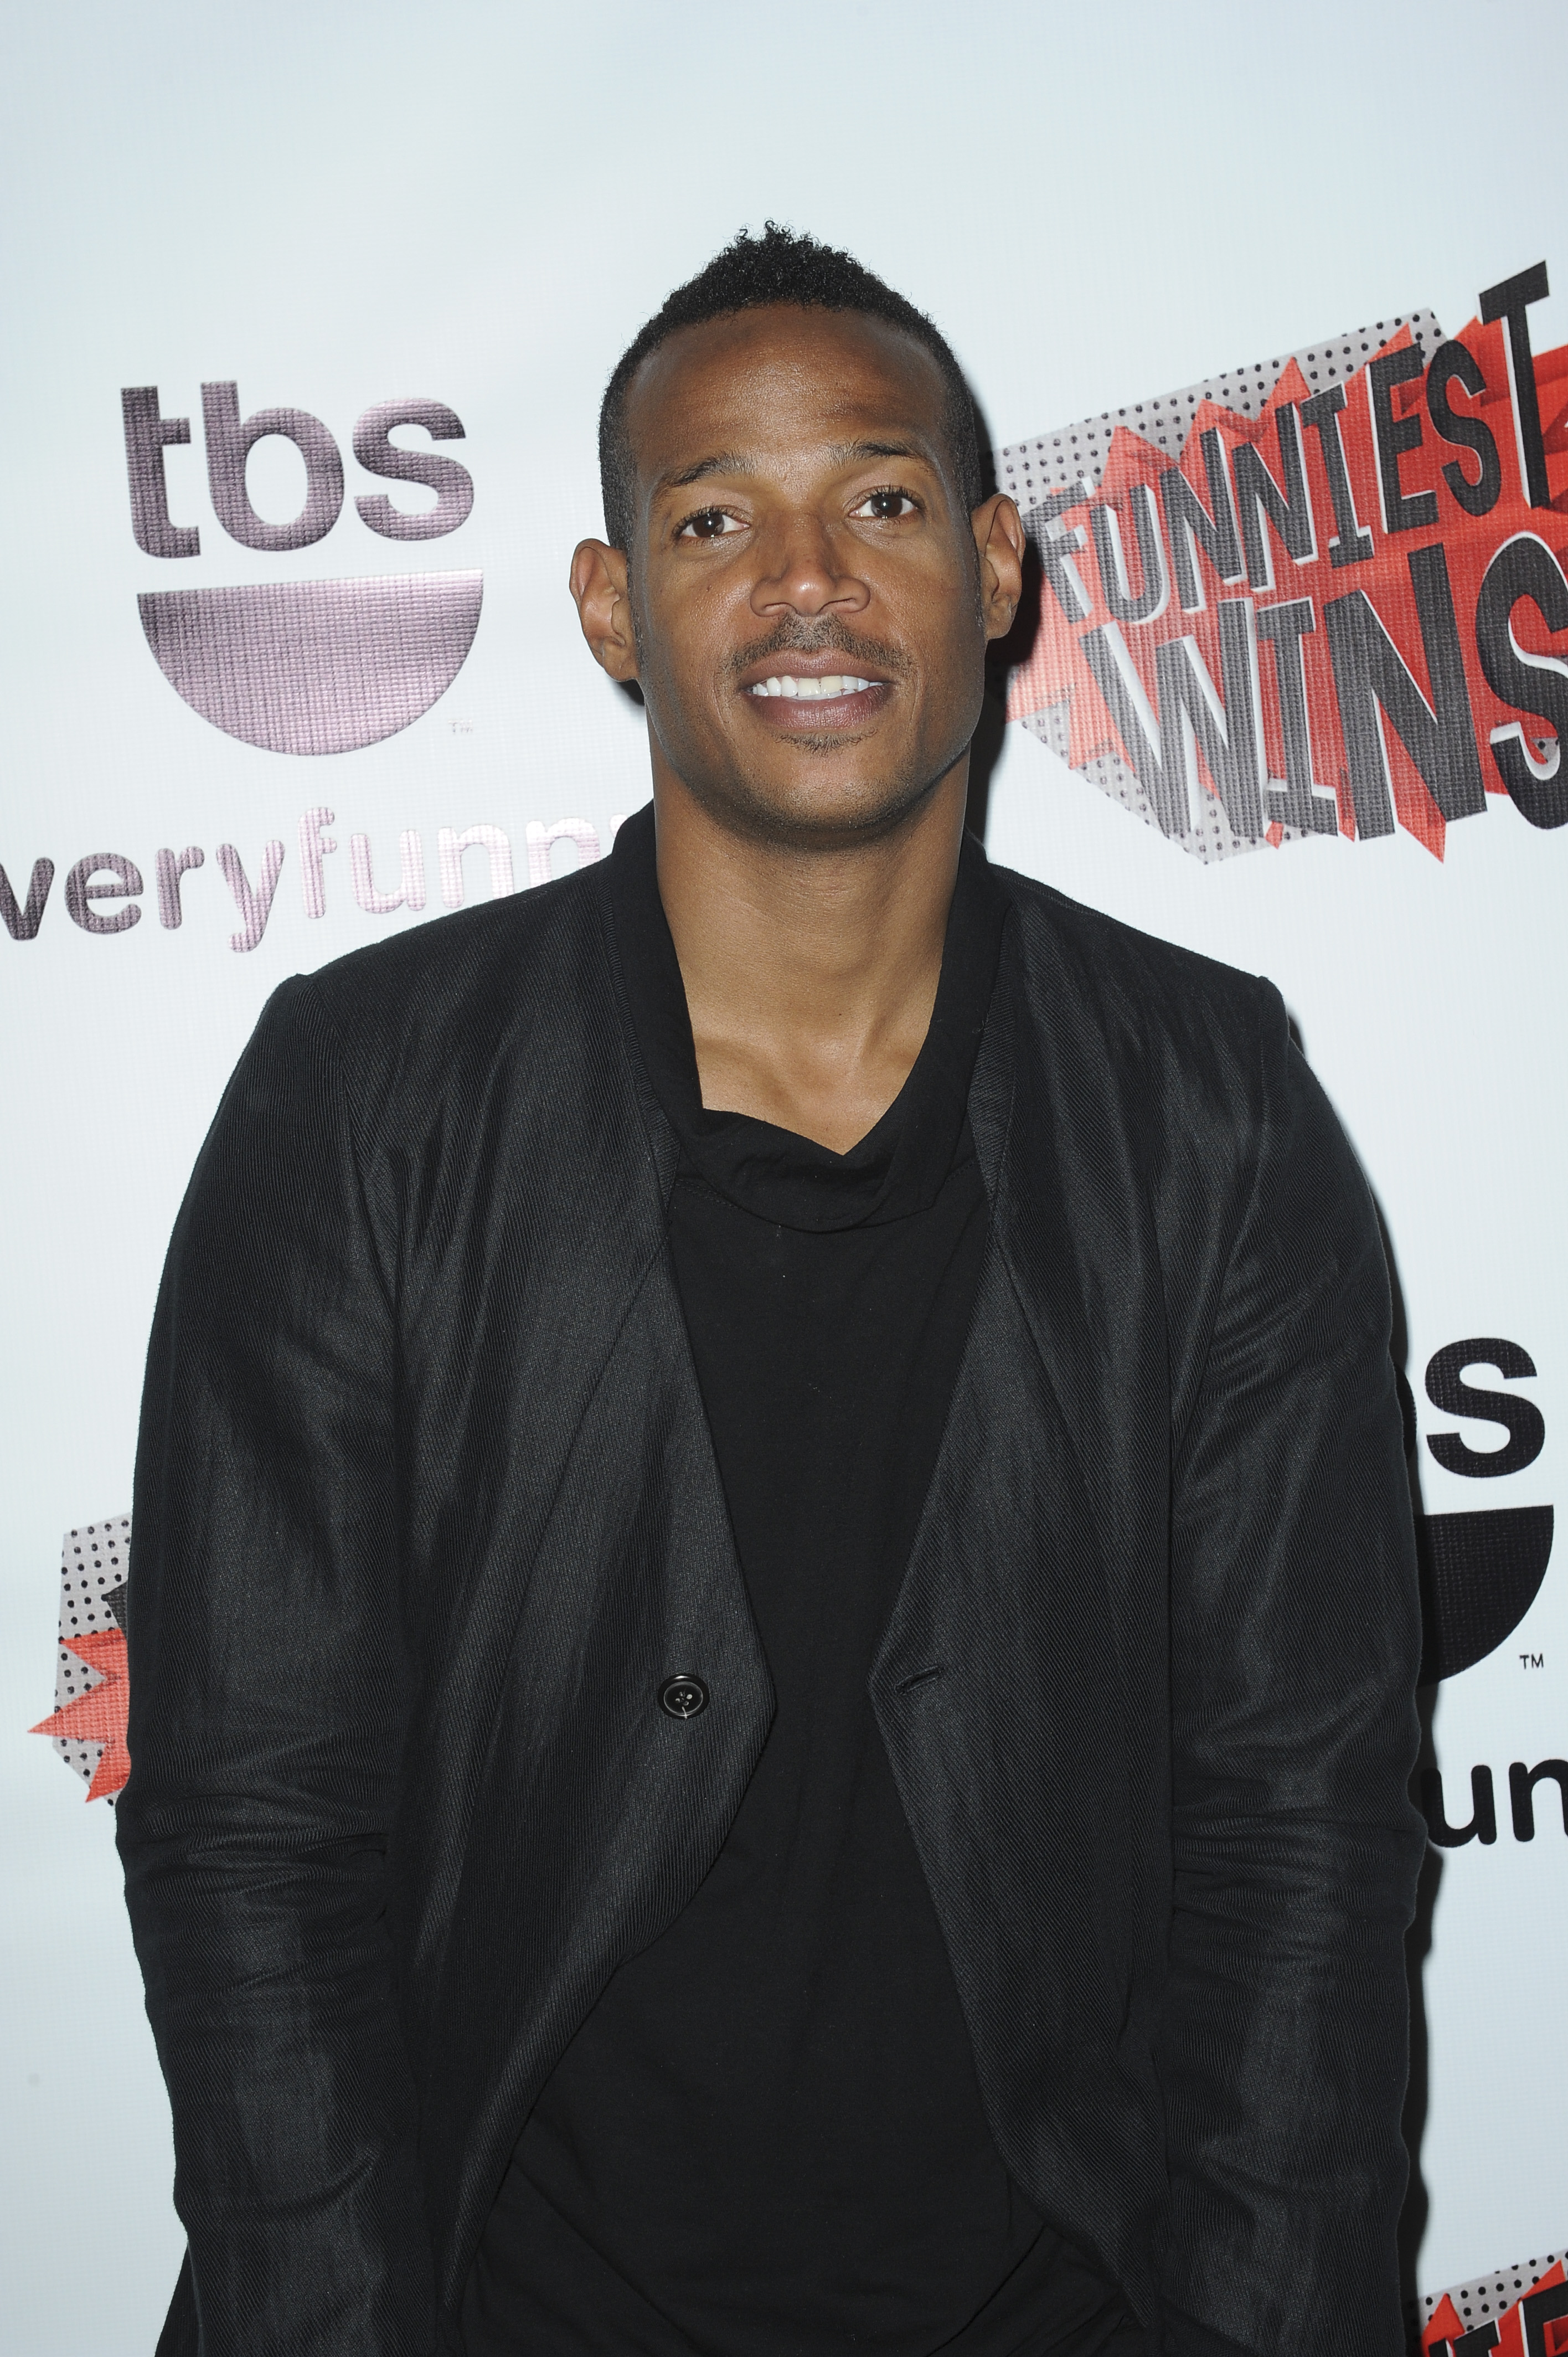 Marlon Wayans at Funniest Wins LA Dinner